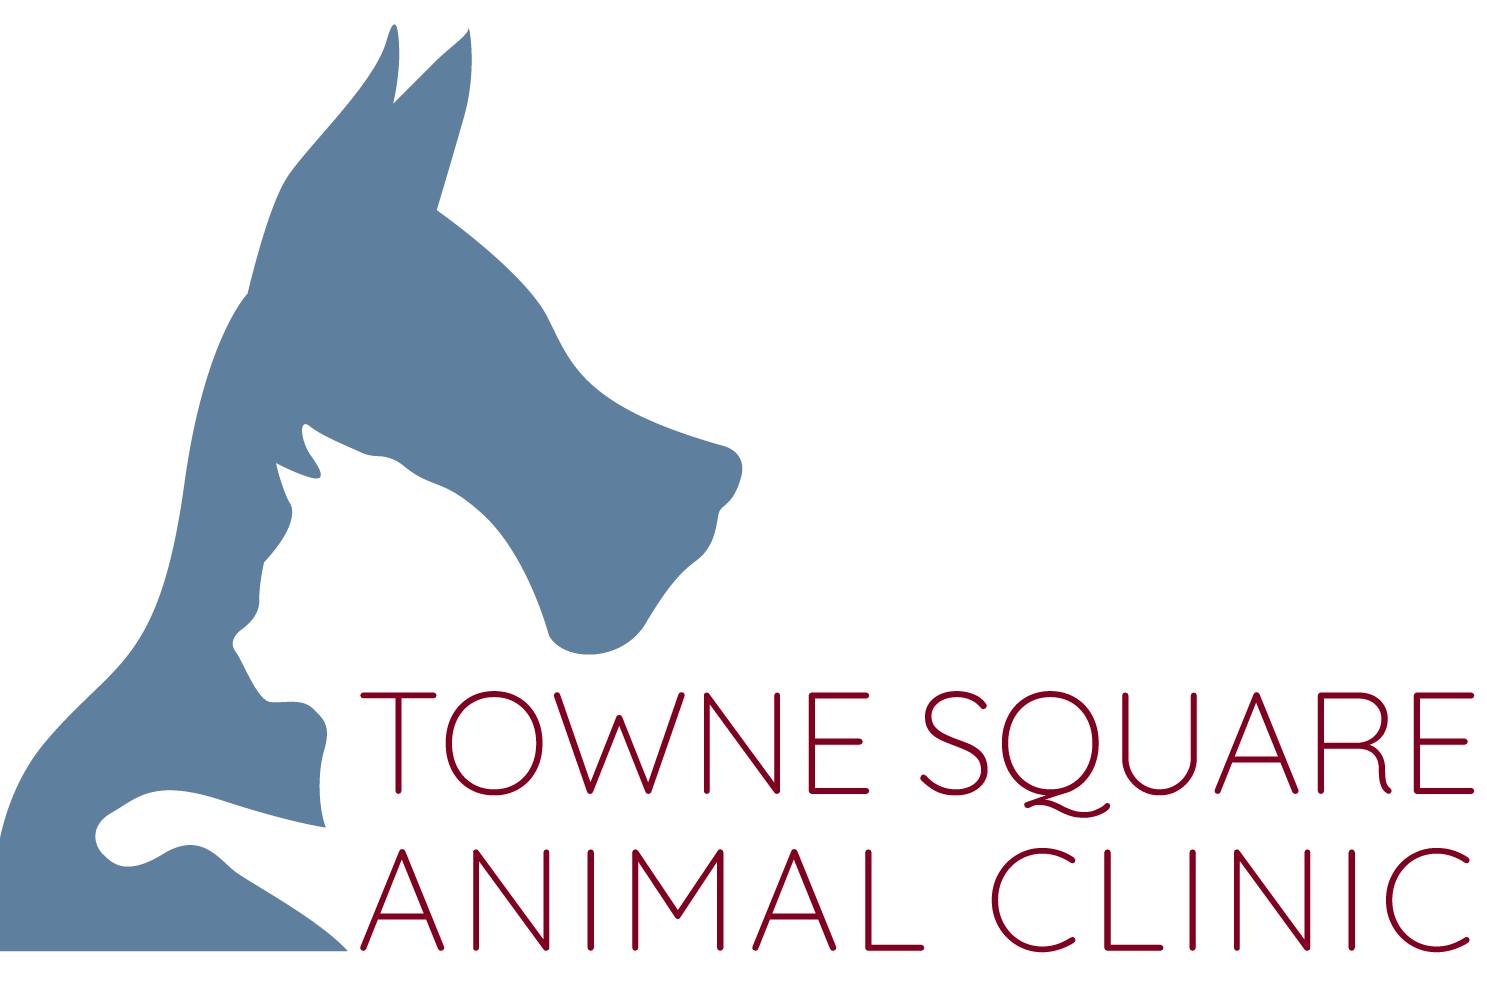 Towne Square Animal Clinic